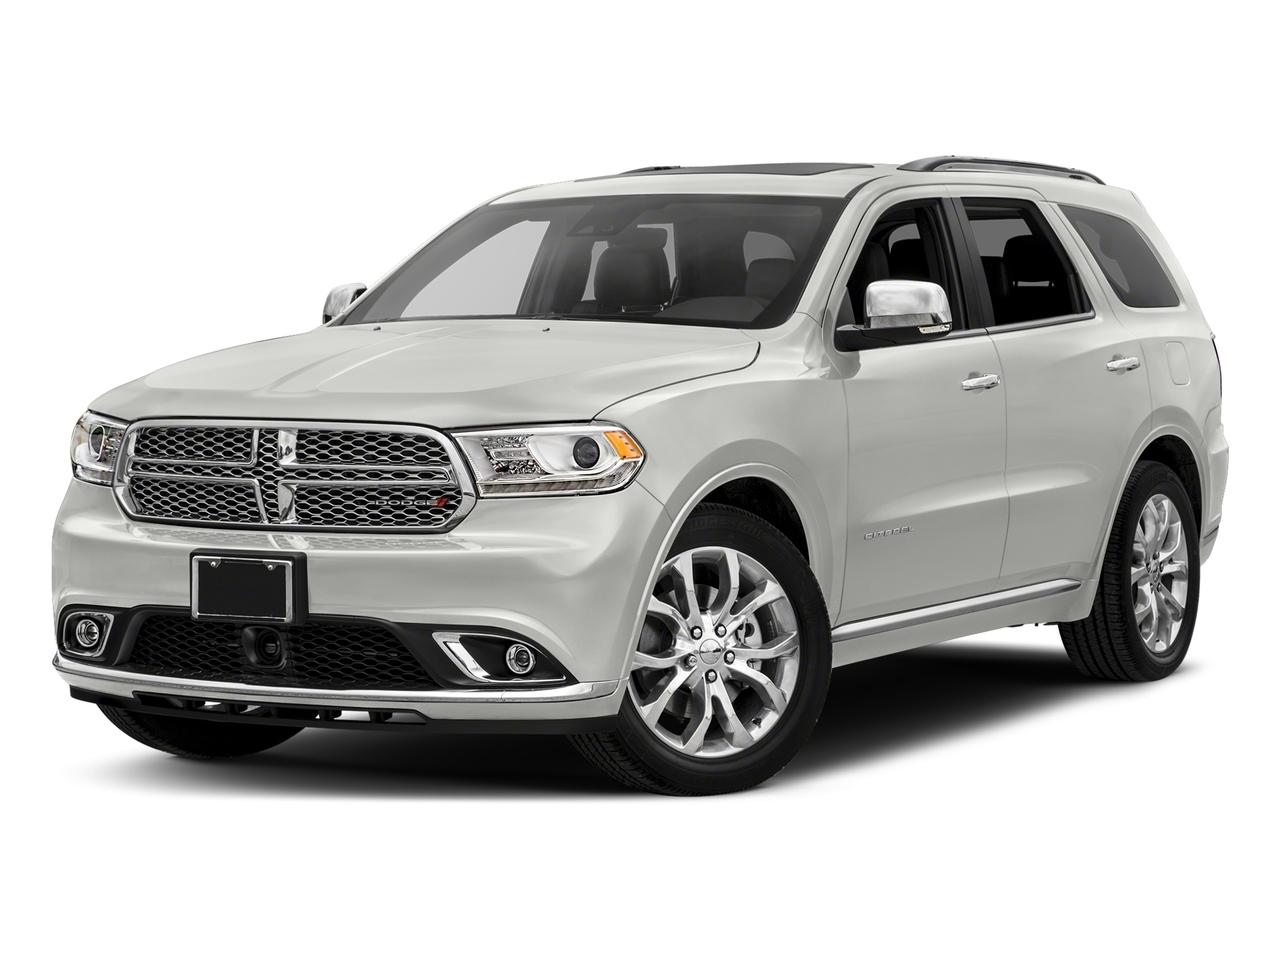 2017 Dodge Durango Vehicle Photo in Austin, TX 78759